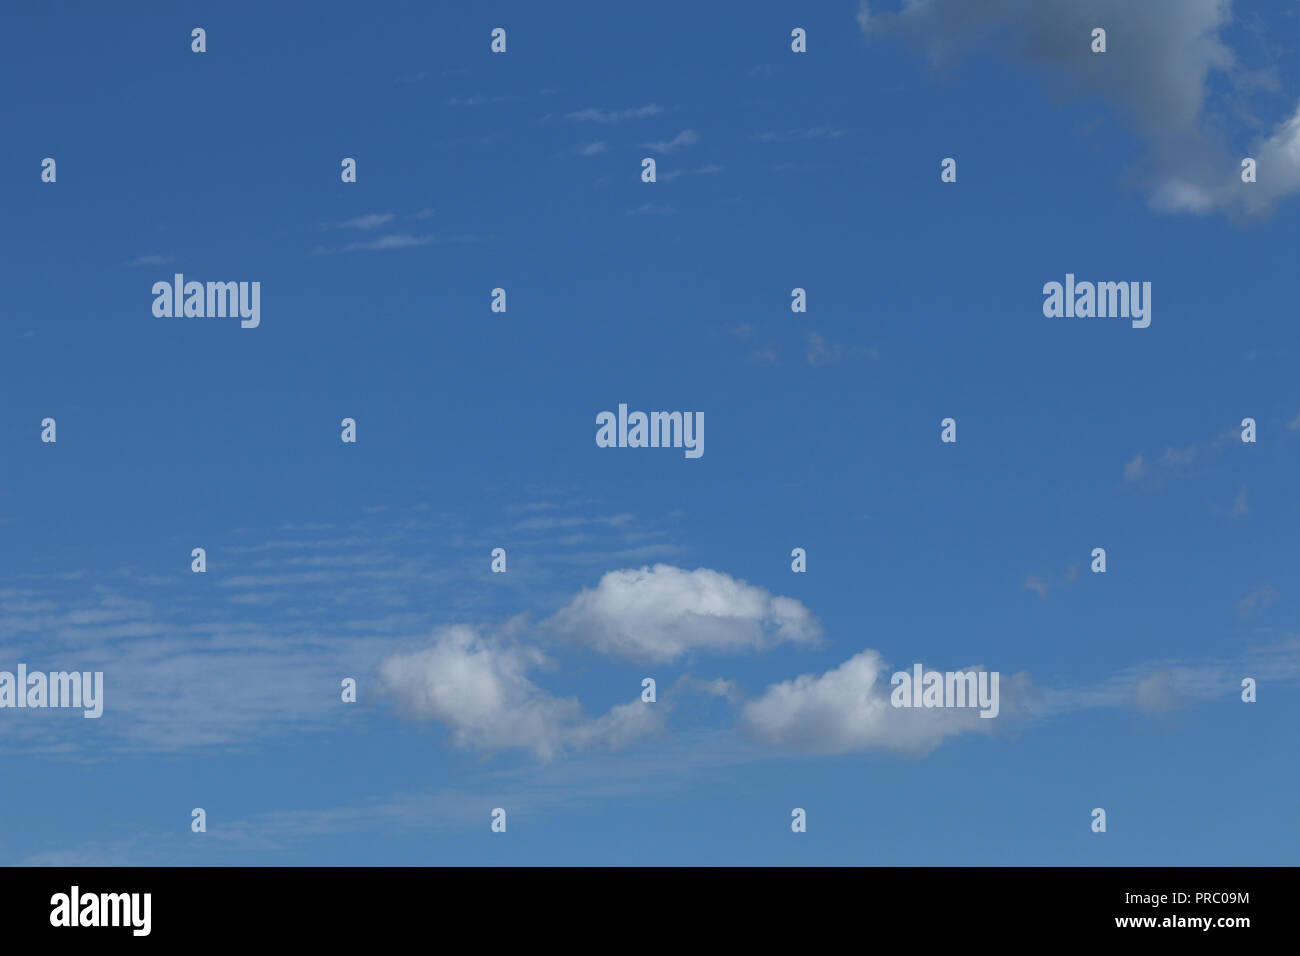 Clouds on the sky - floating clouds - Stock Image